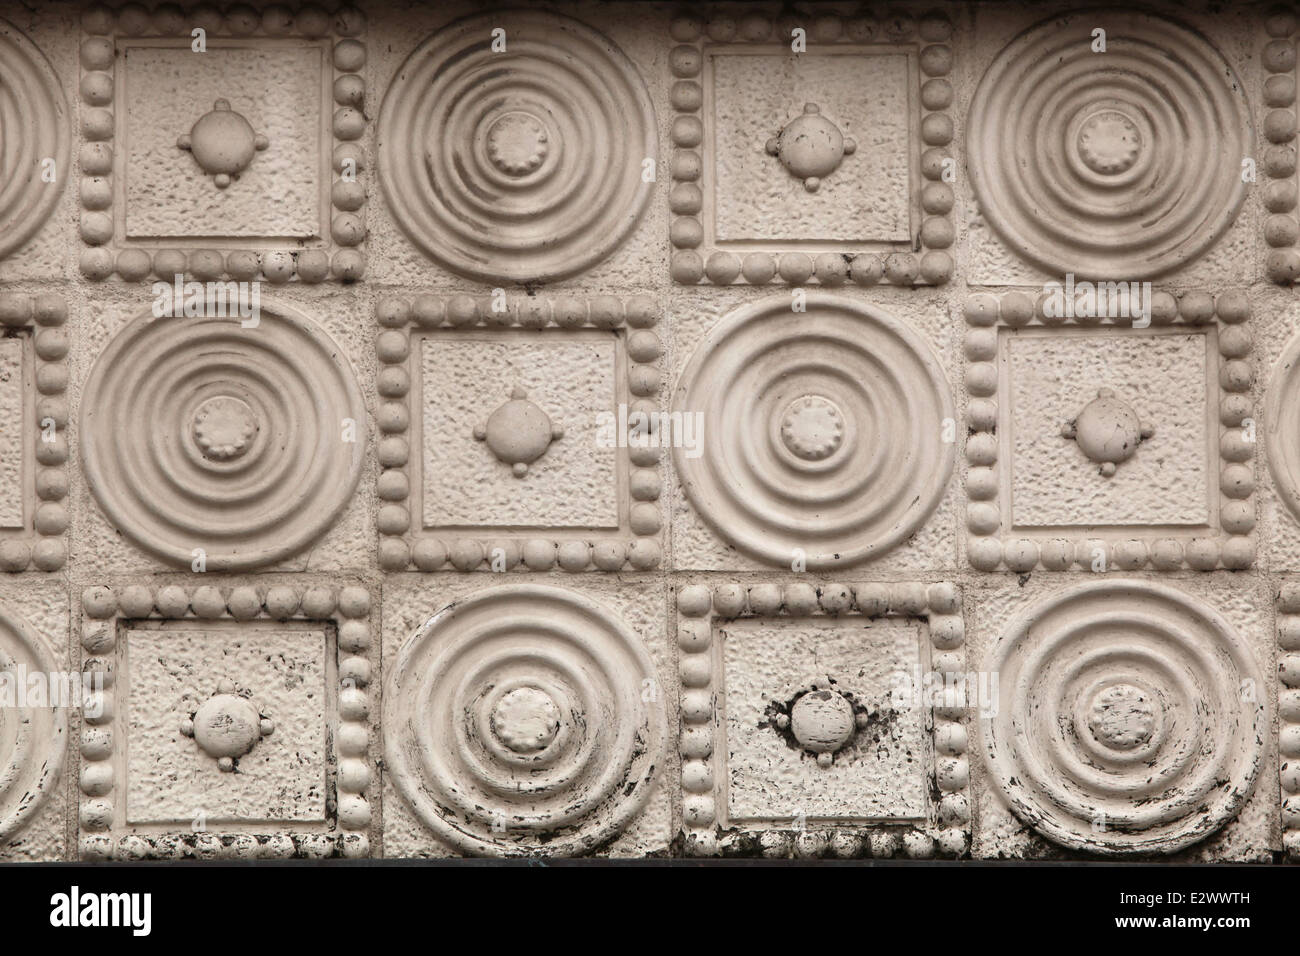 Secession pattern on a building in Hradec Kralove, Czech Republic. - Stock Image